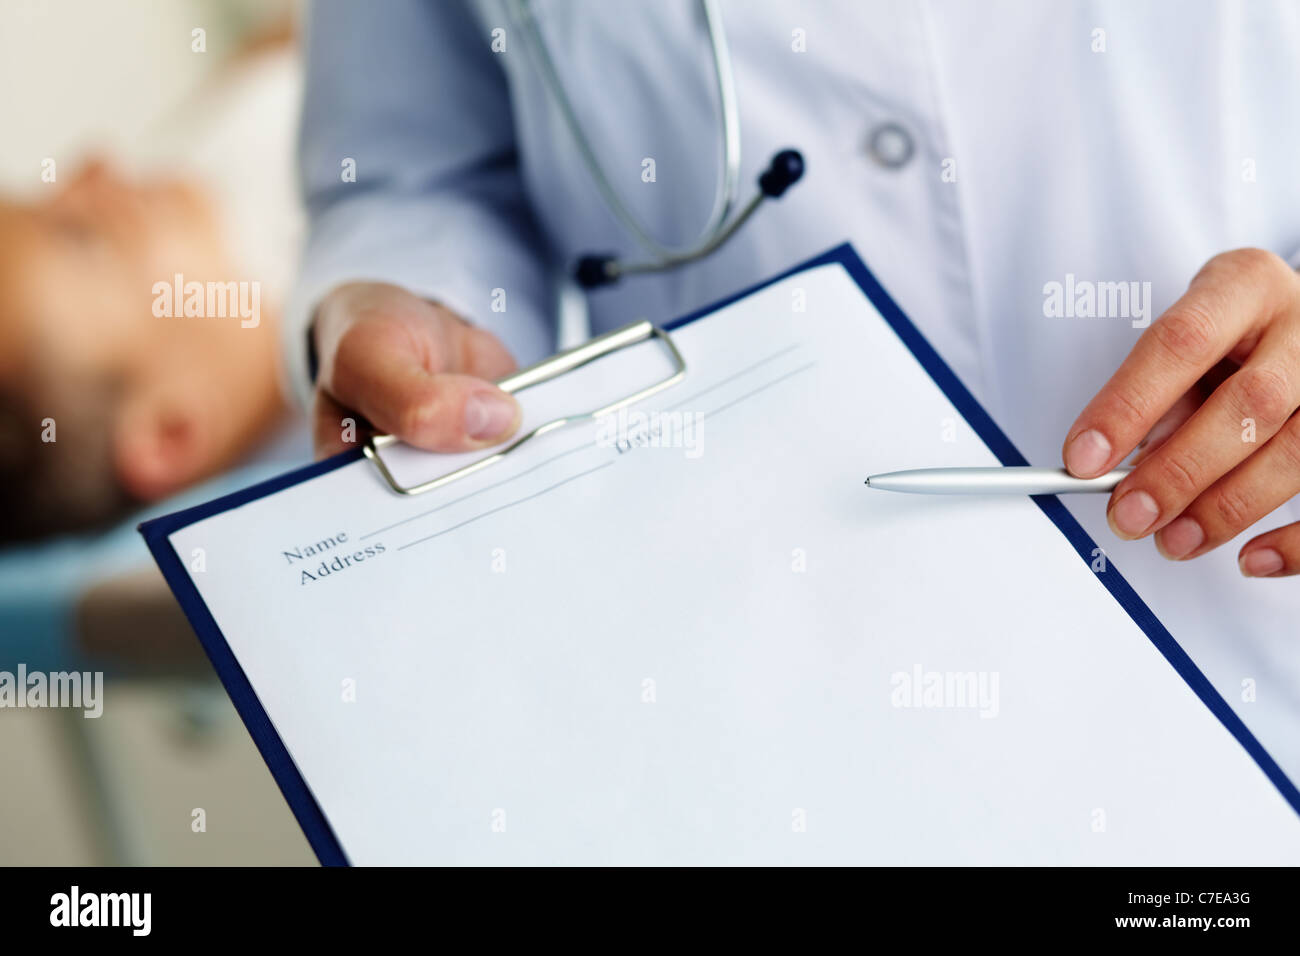 Hand of female doctor with pen pointing at clipboard - Stock Image